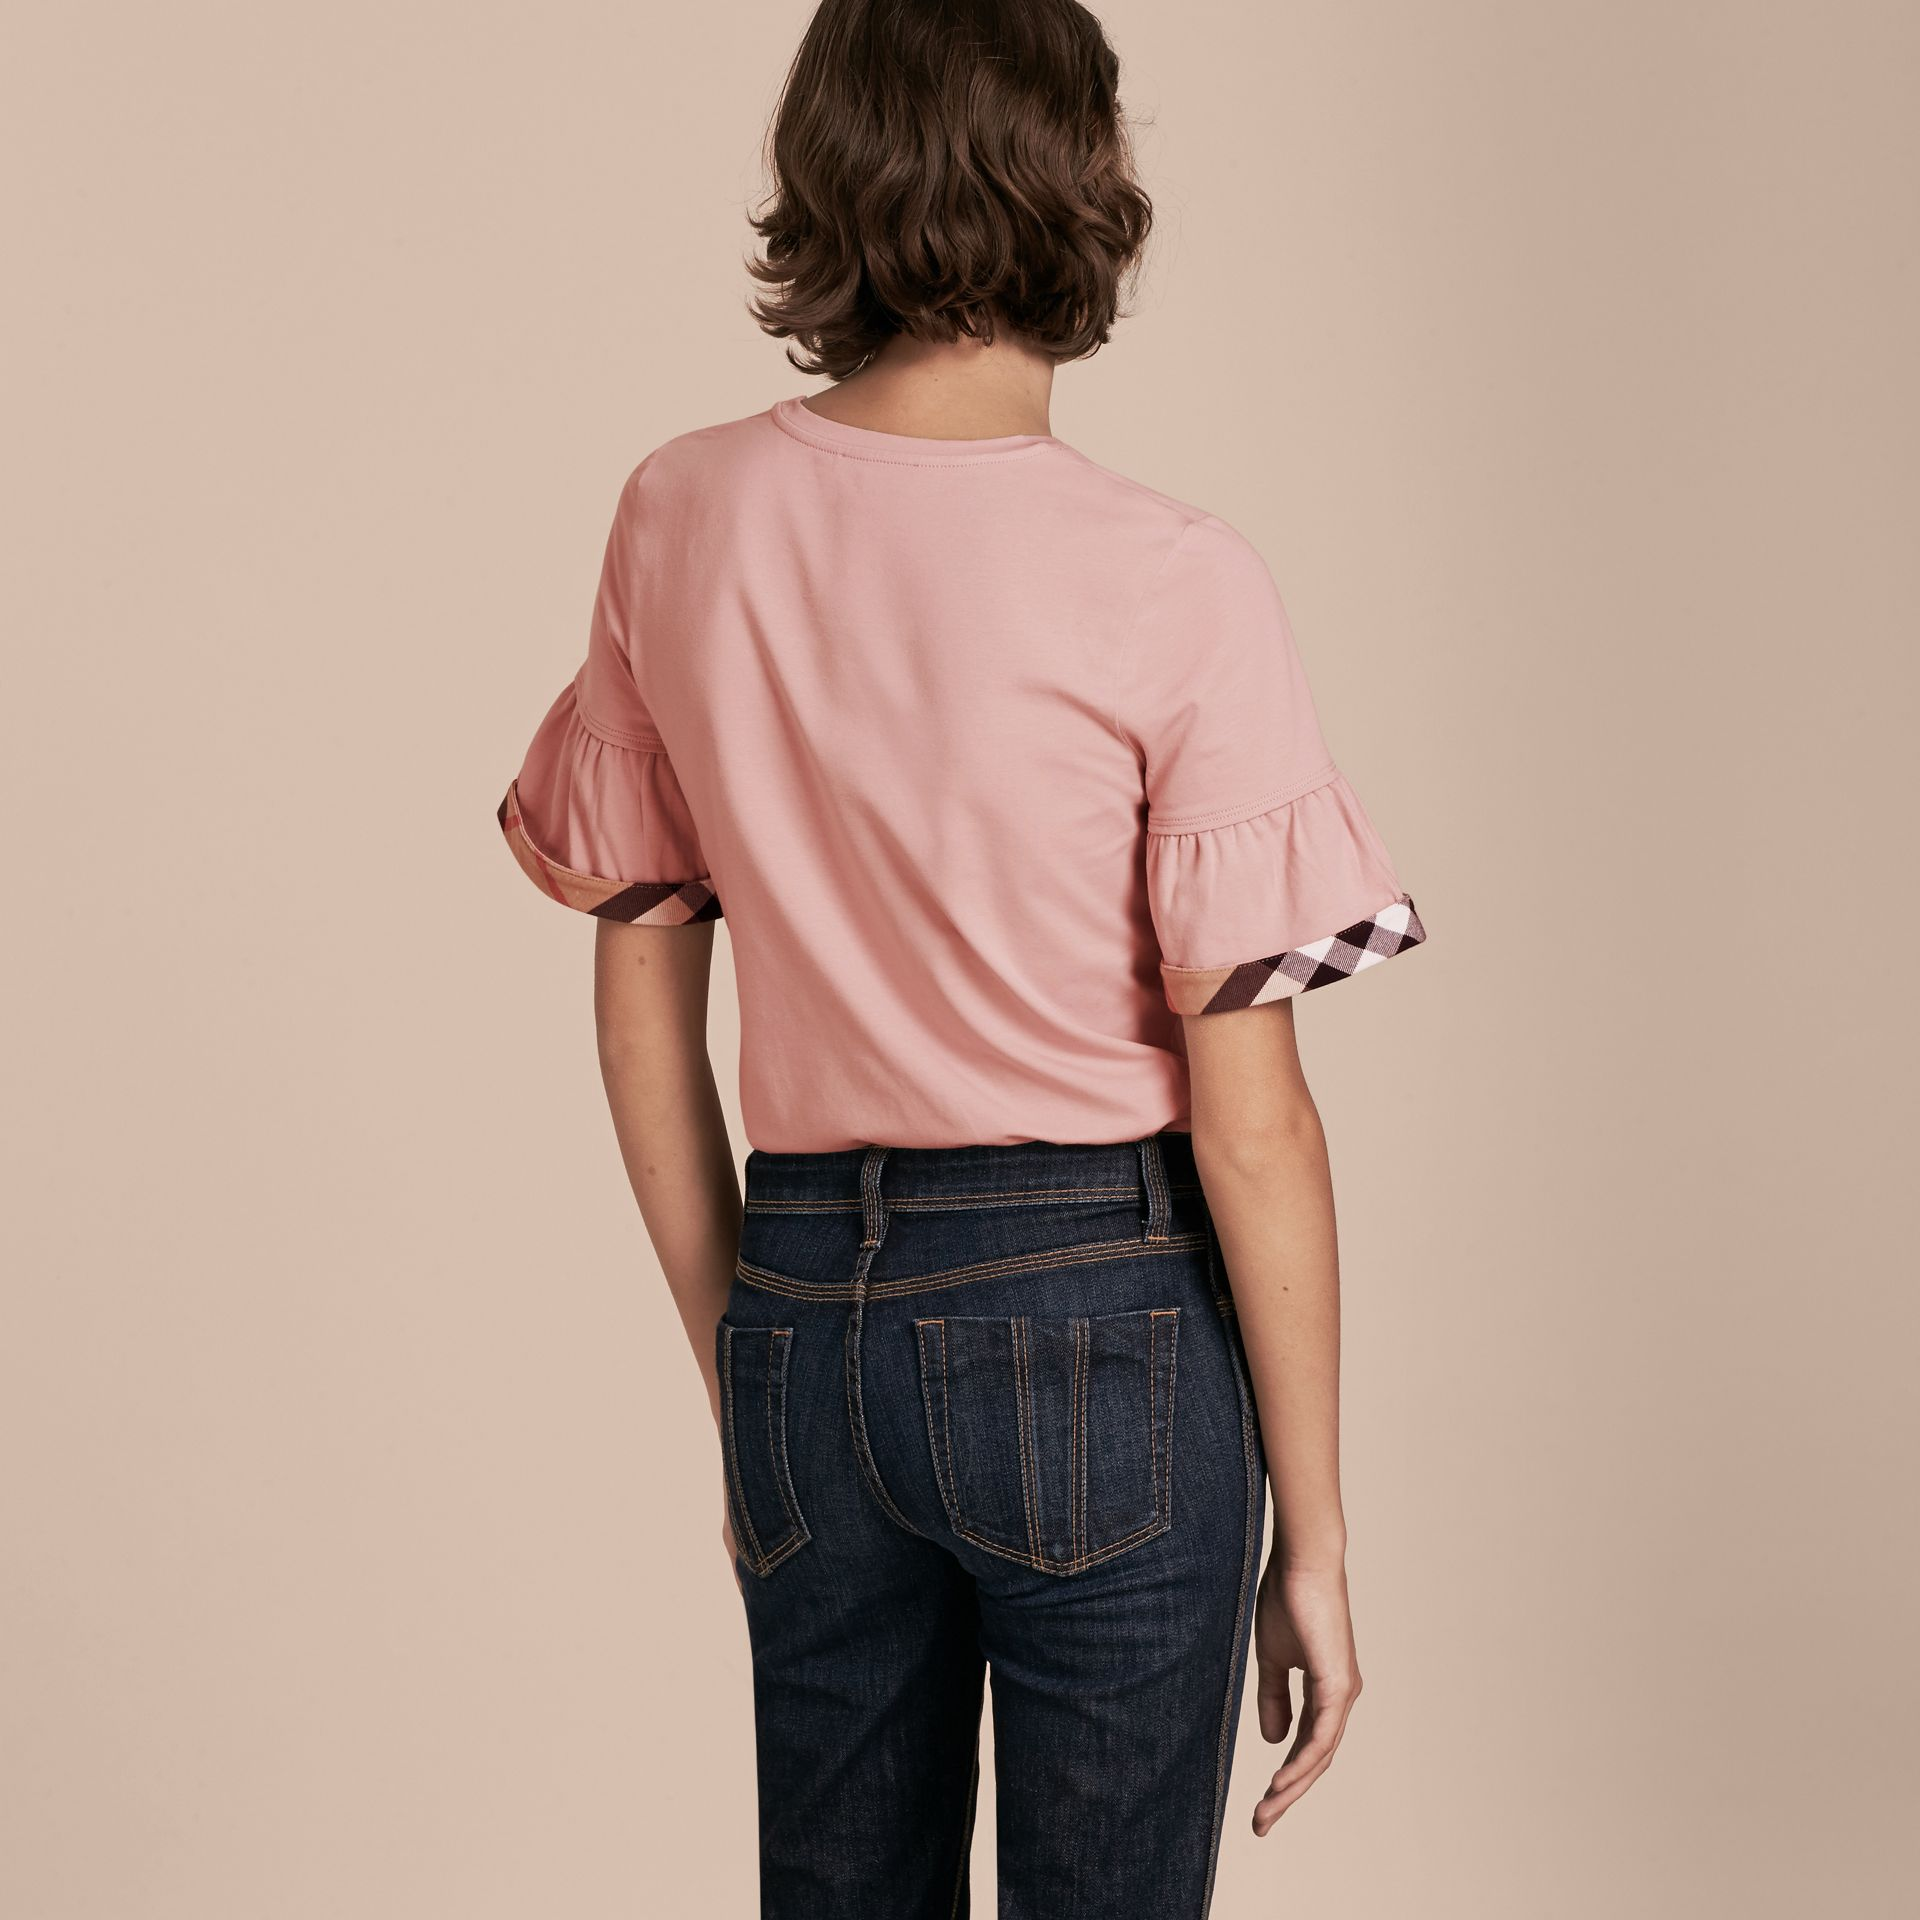 Ash rose Stretch Cotton T-shirt with Check Trim Ruffles Ash Rose - gallery image 3